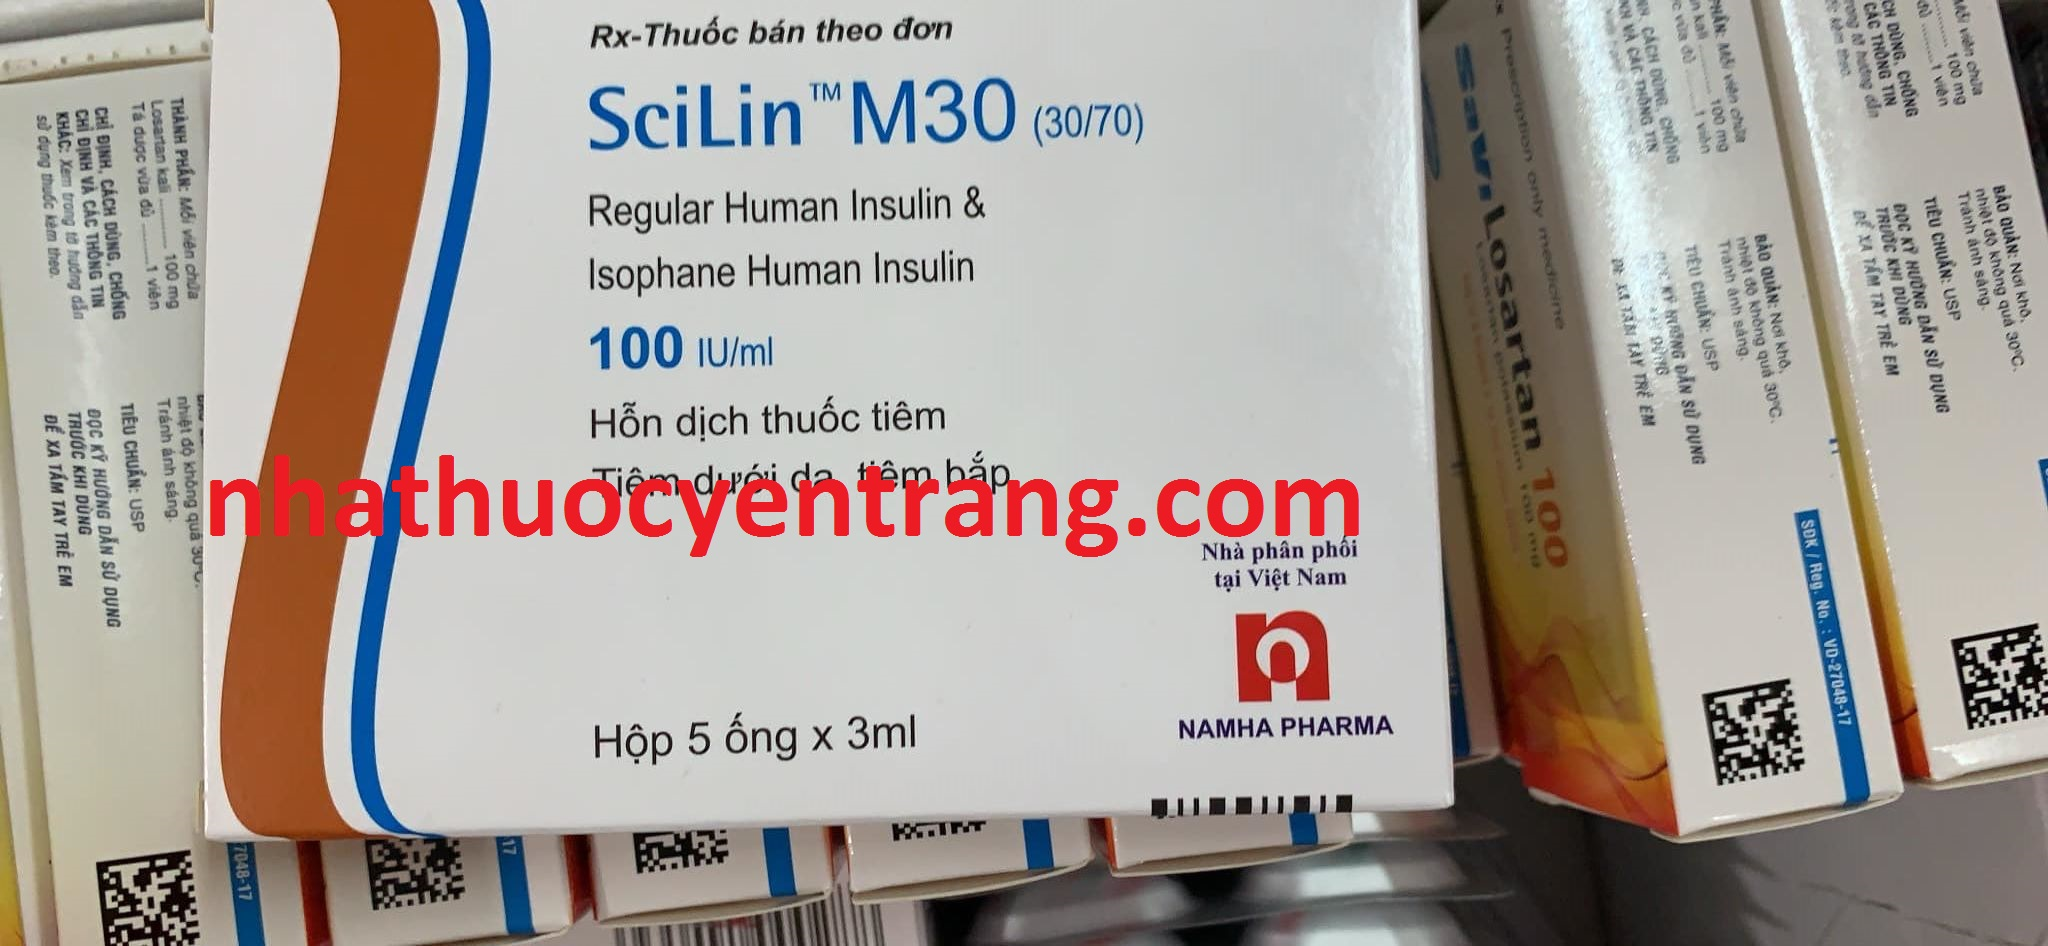 Scilin M30 (30/70) 100 IU/ml